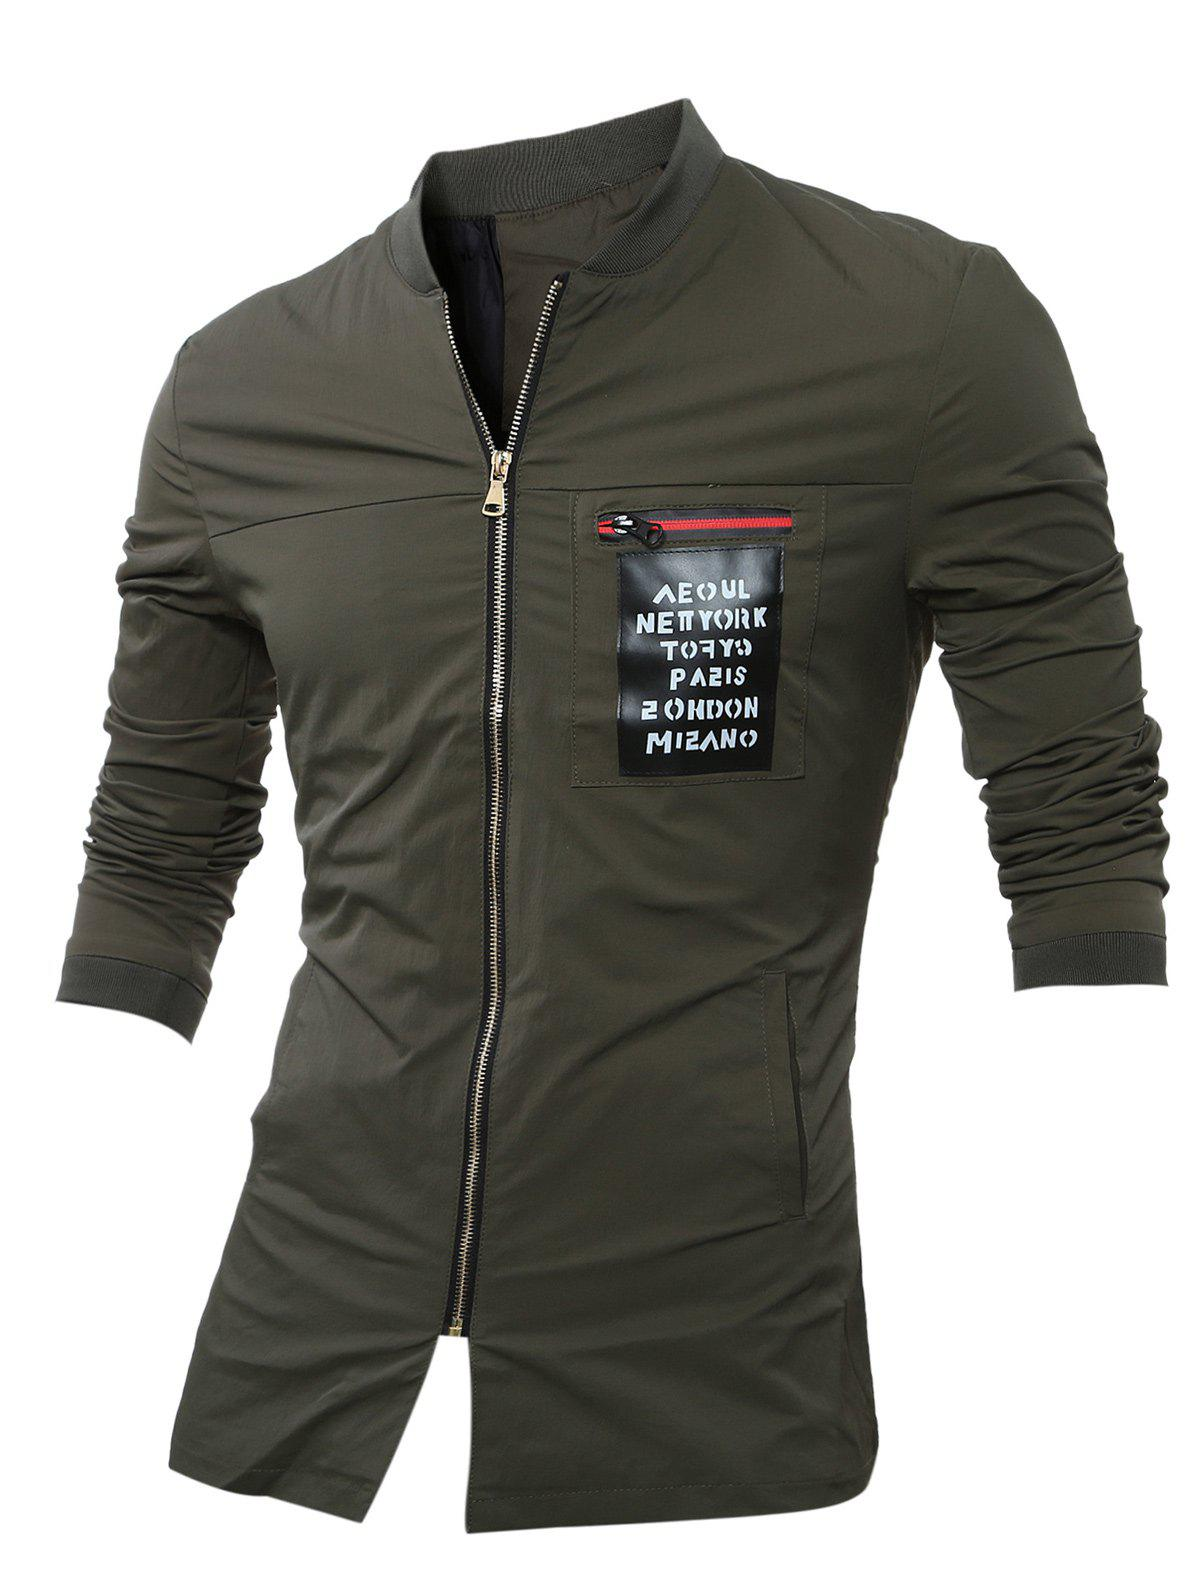 PU Leather Applique Stand Collar Zip Up Jacket - ARMY GREEN XL